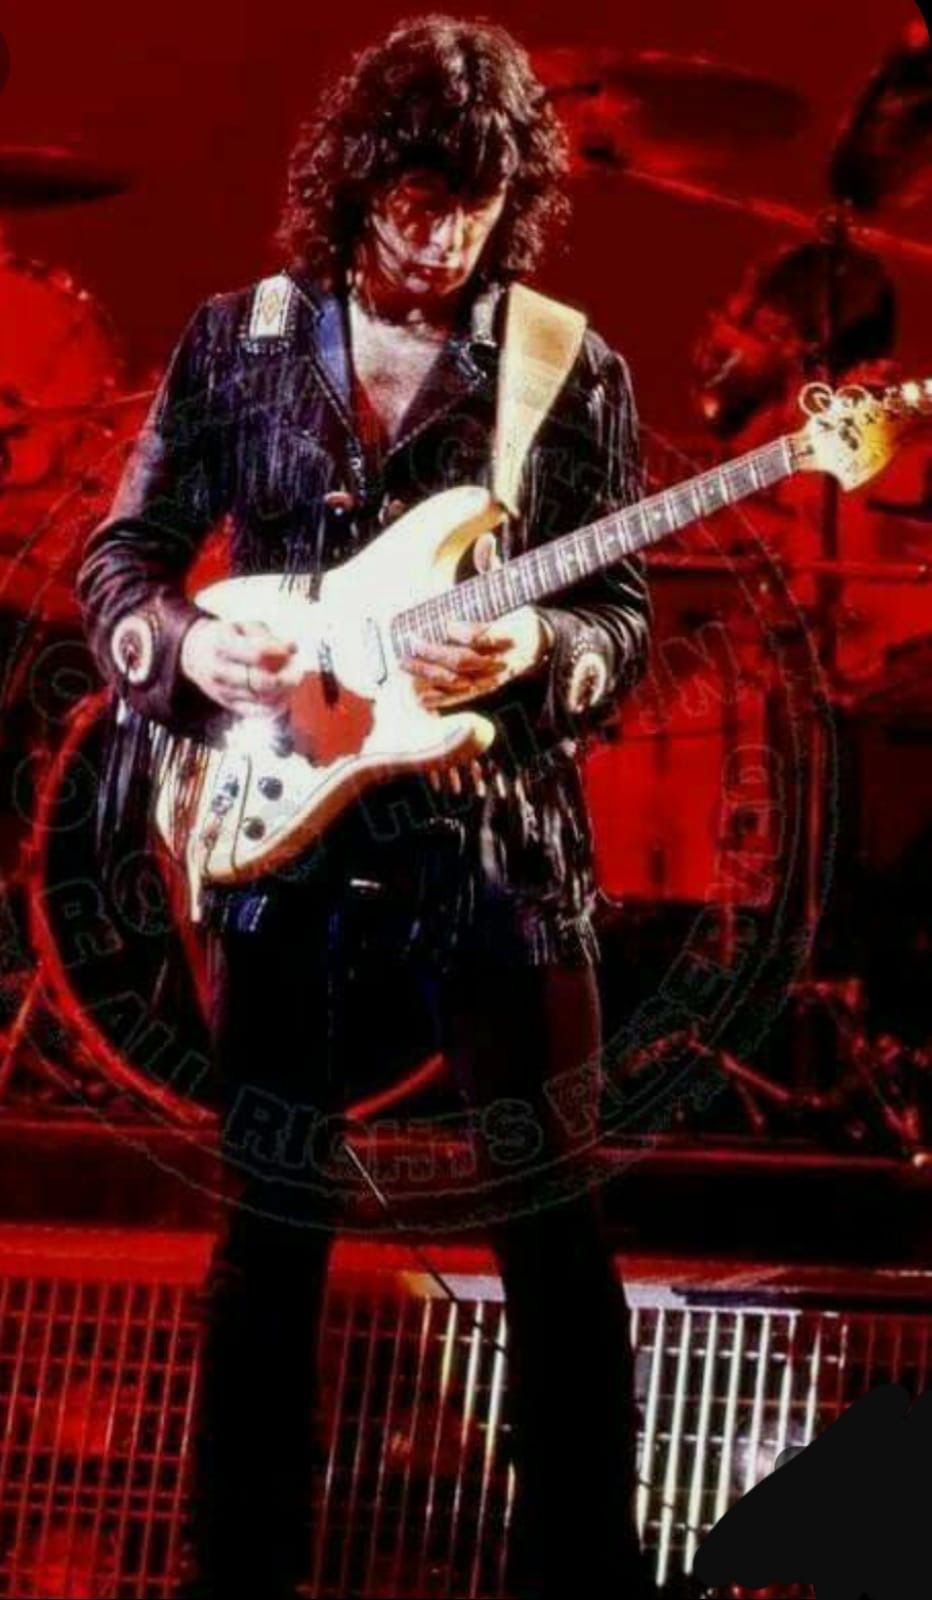 Pin By Herman Babkin On B Ritchie In 2020 Heavy Metal Music Ritchie Blackmore S Rainbow Rock Legends